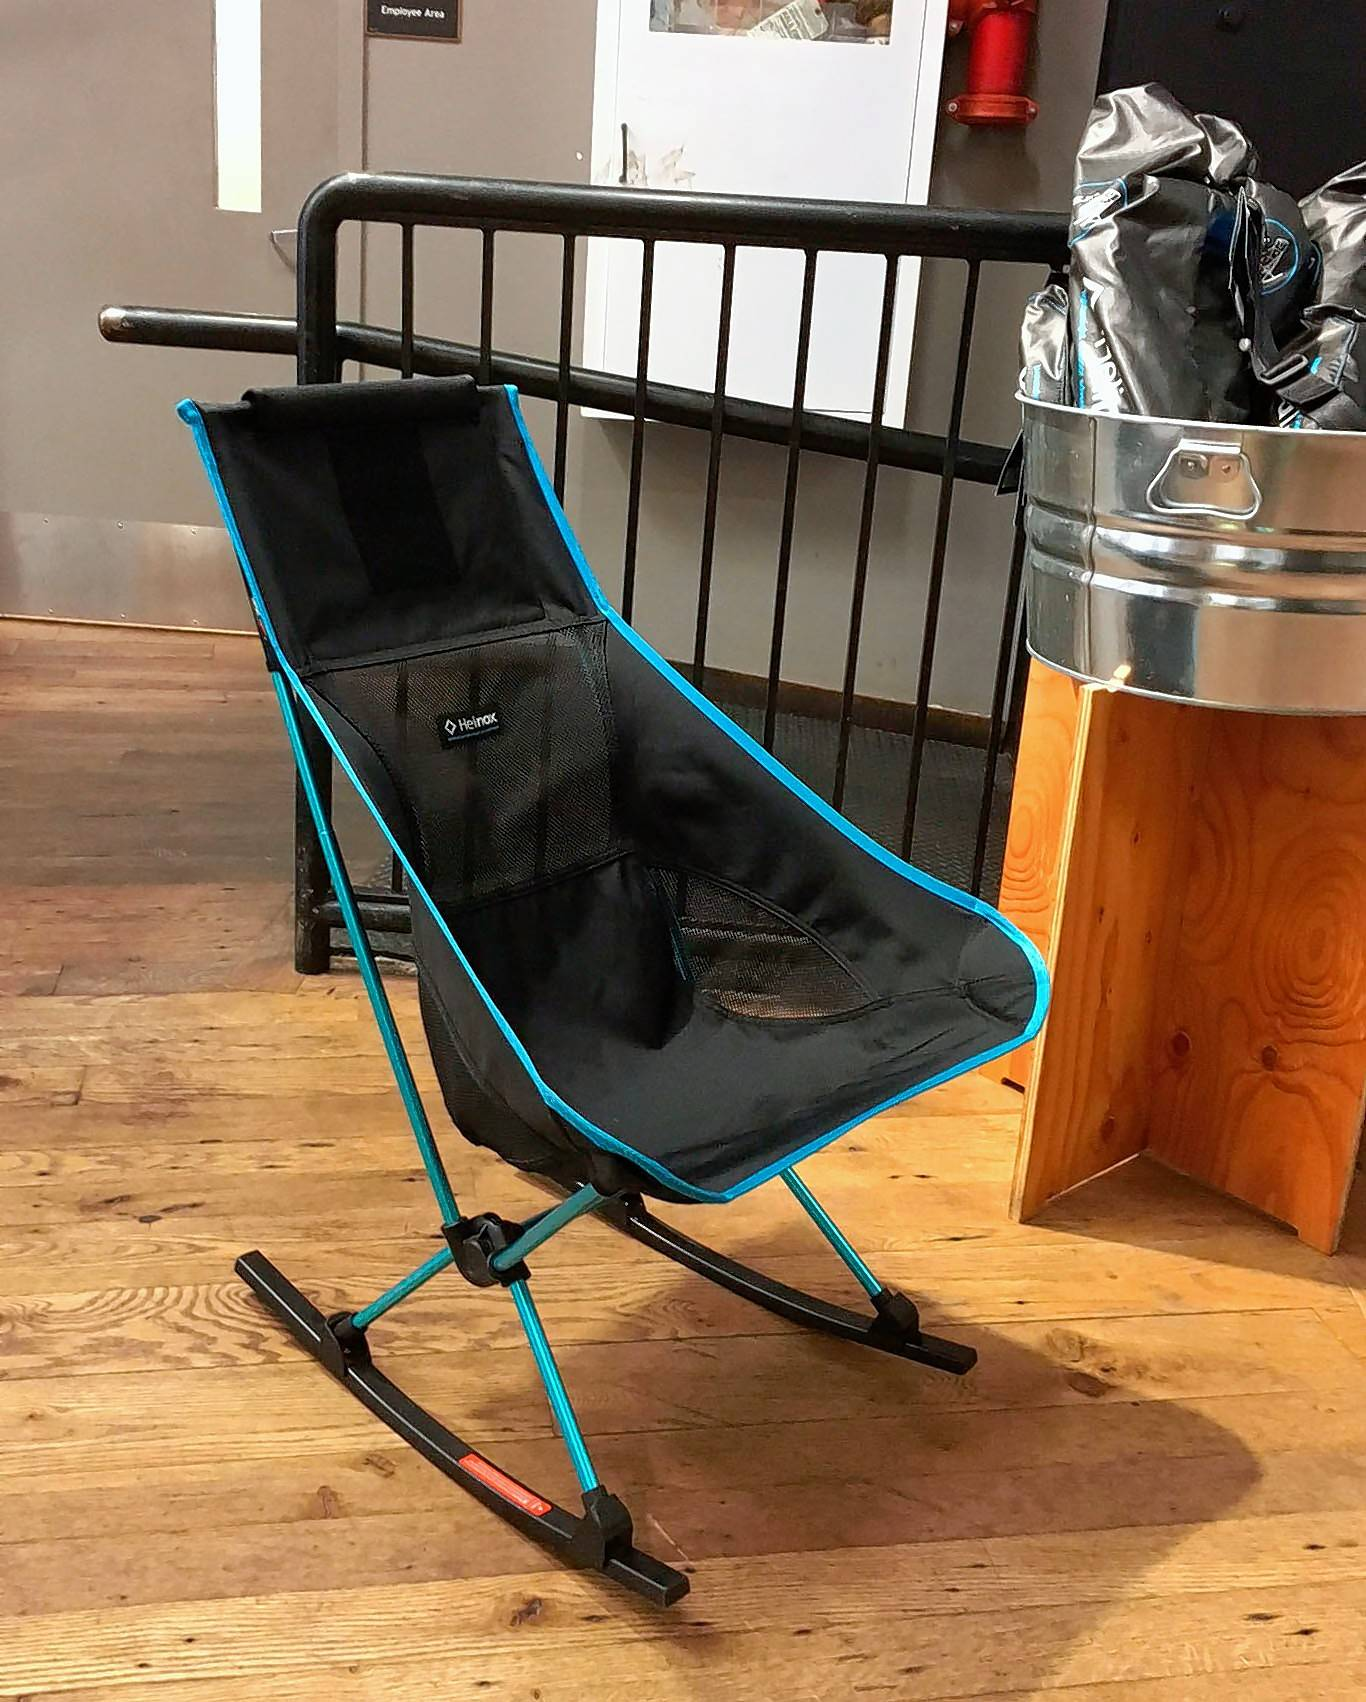 This rocking chair, made by Helinox, is designed for camping but looks nice enough that it can also be used as indoor furniture.